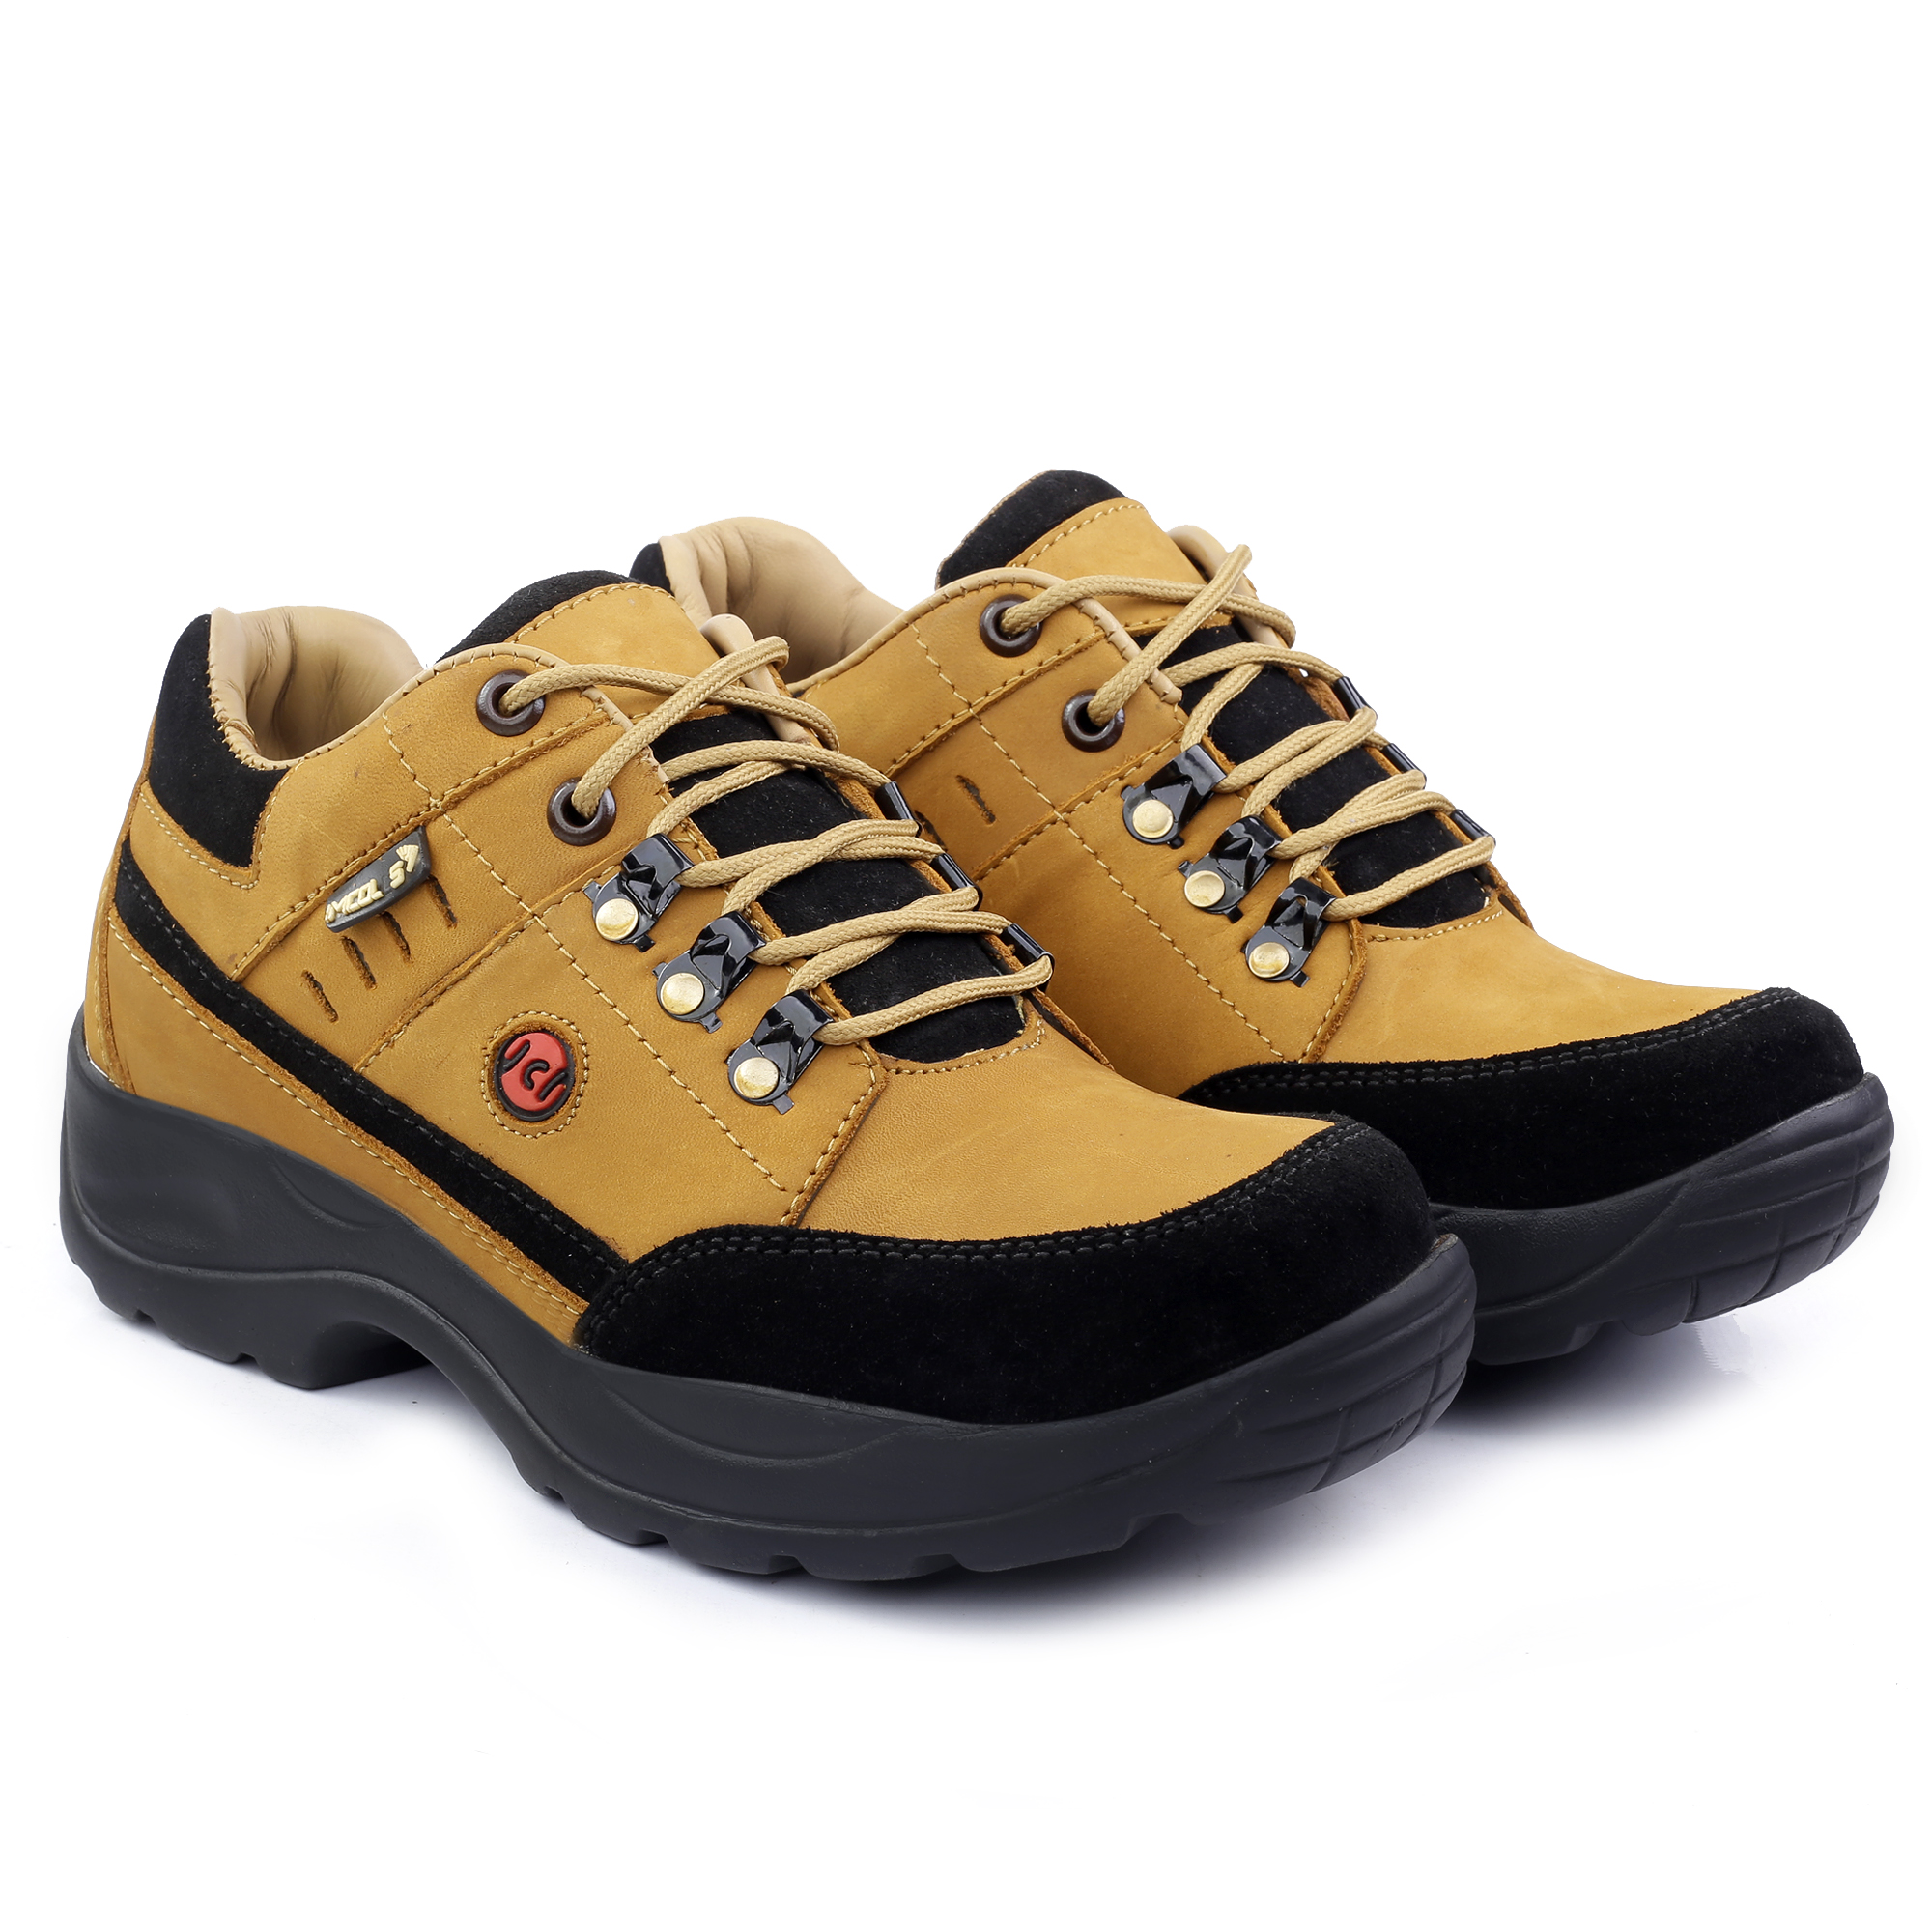 IMC673A.6000_TN GOOD QUALITY & FANCY CASUAL LEATHER BOOT SHOE FOR MEN IMC673A.6000_TN (TAN, 7TO10, 4 PAIRS)